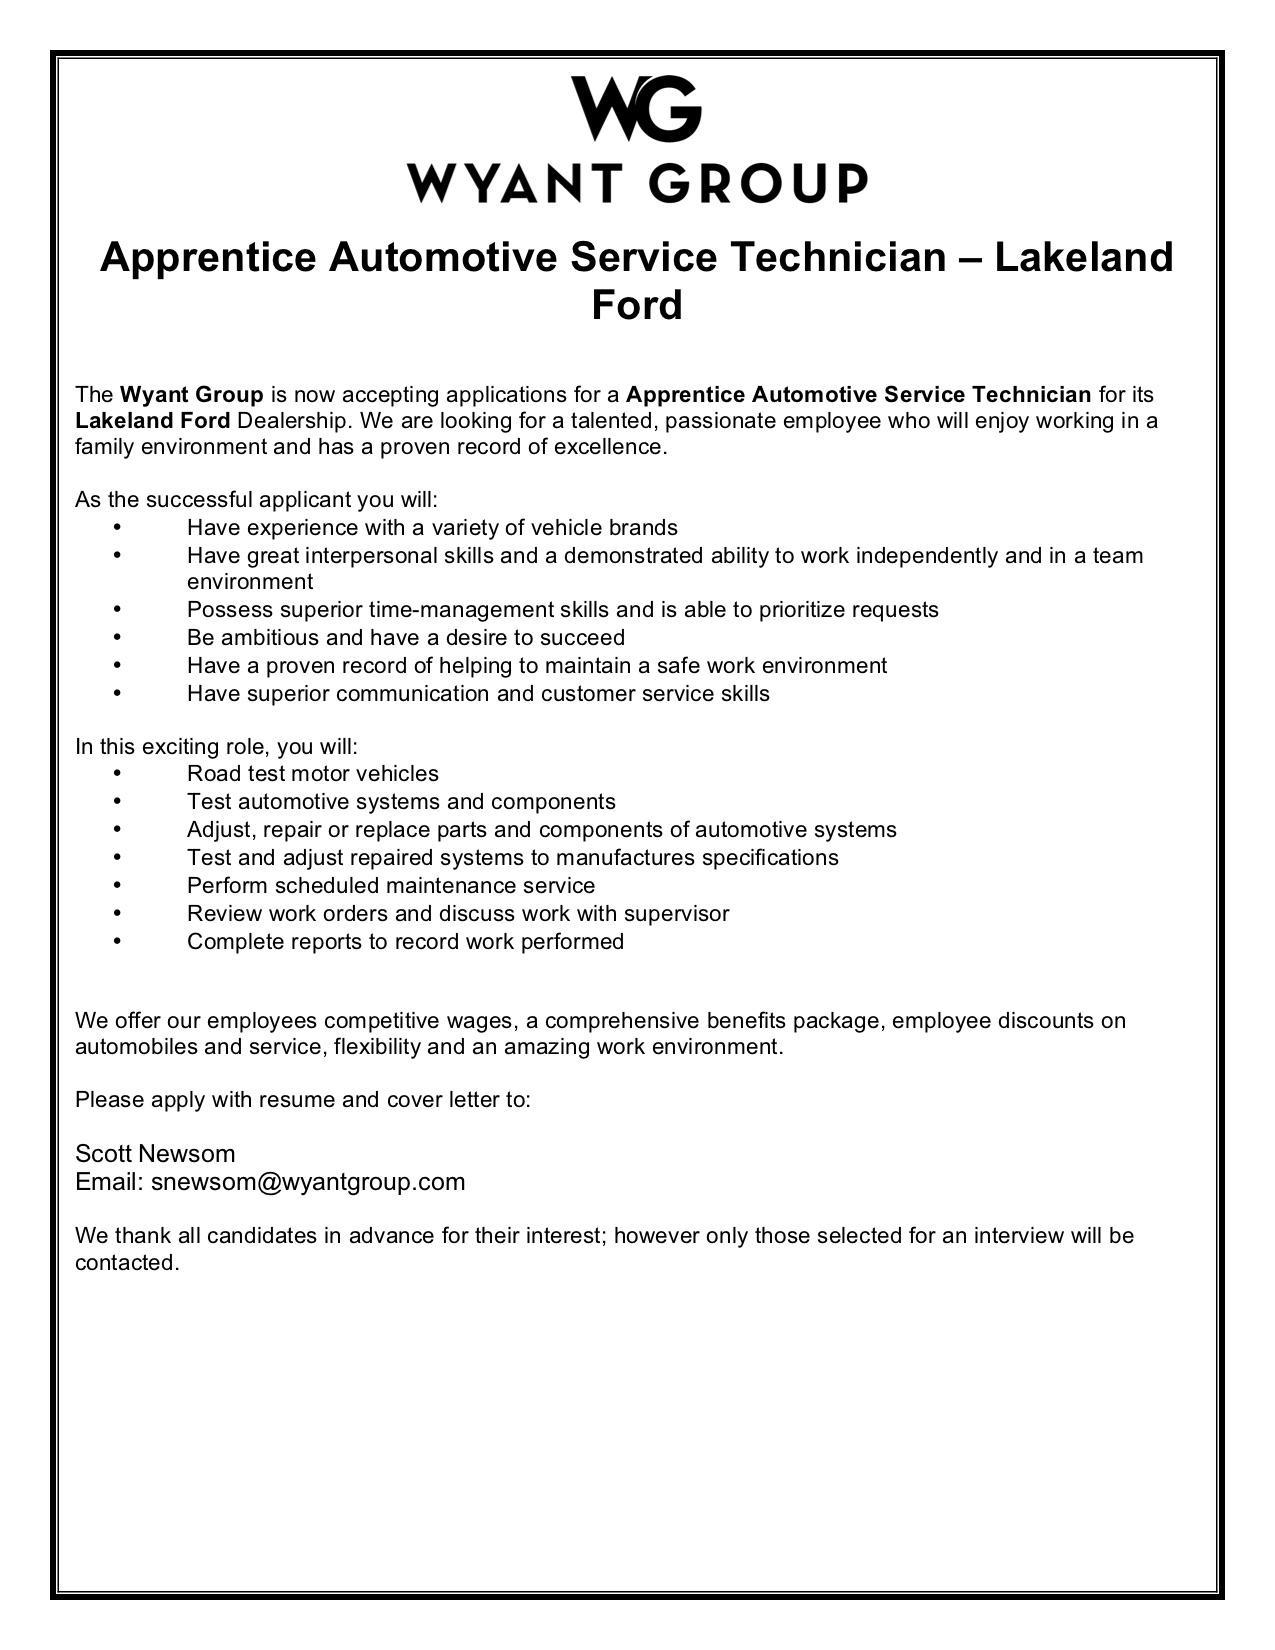 Lakeland Ford Apprentice Journeyman Technician